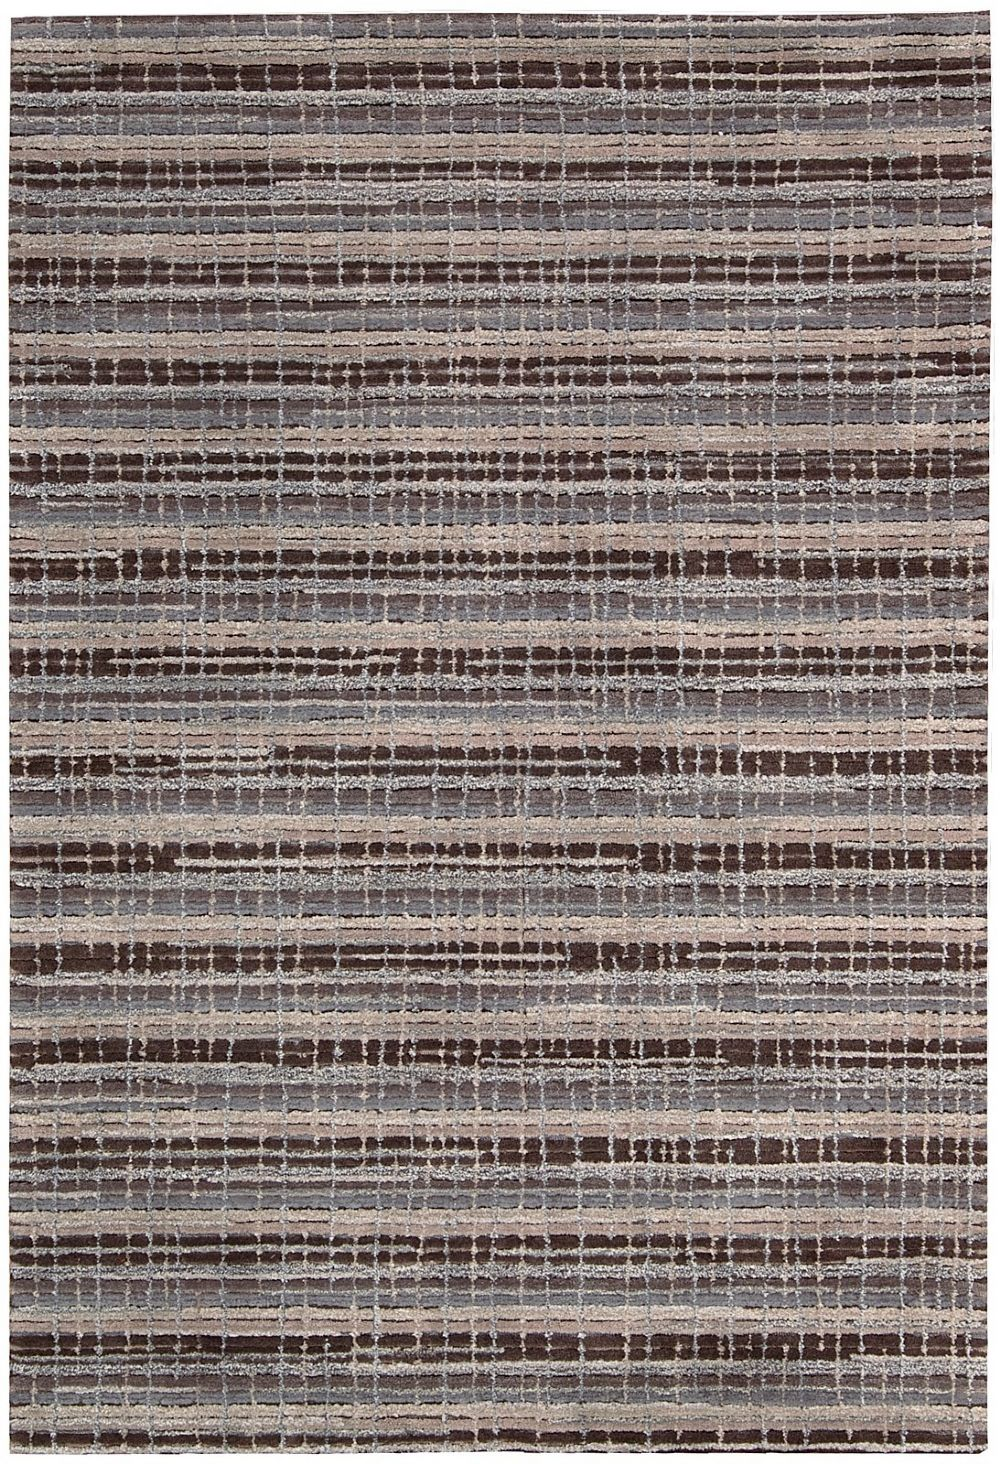 joseph abboud mulholland contemporary area rug collection